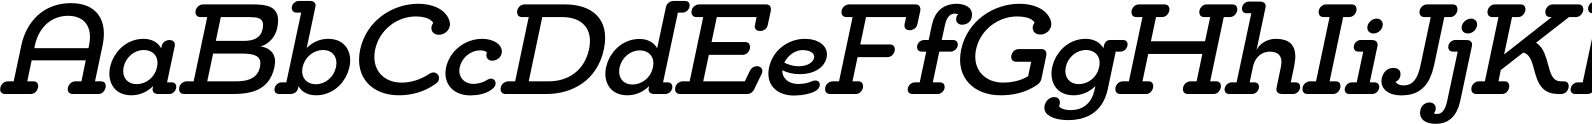 Chennai Slab Medium Oblique Font